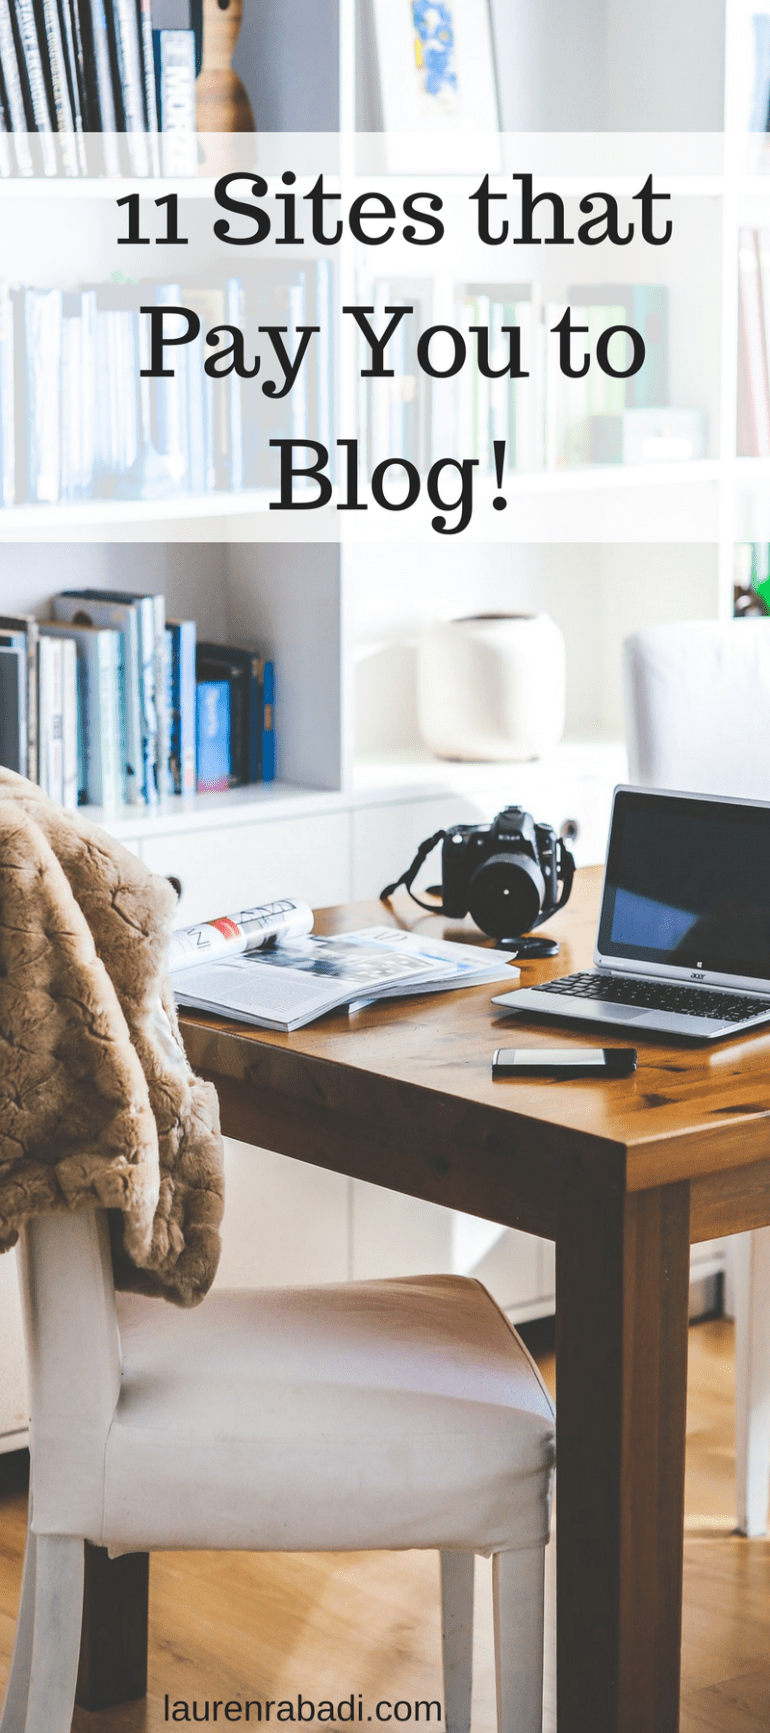 11 Sites that Pay You to Blog! (1)